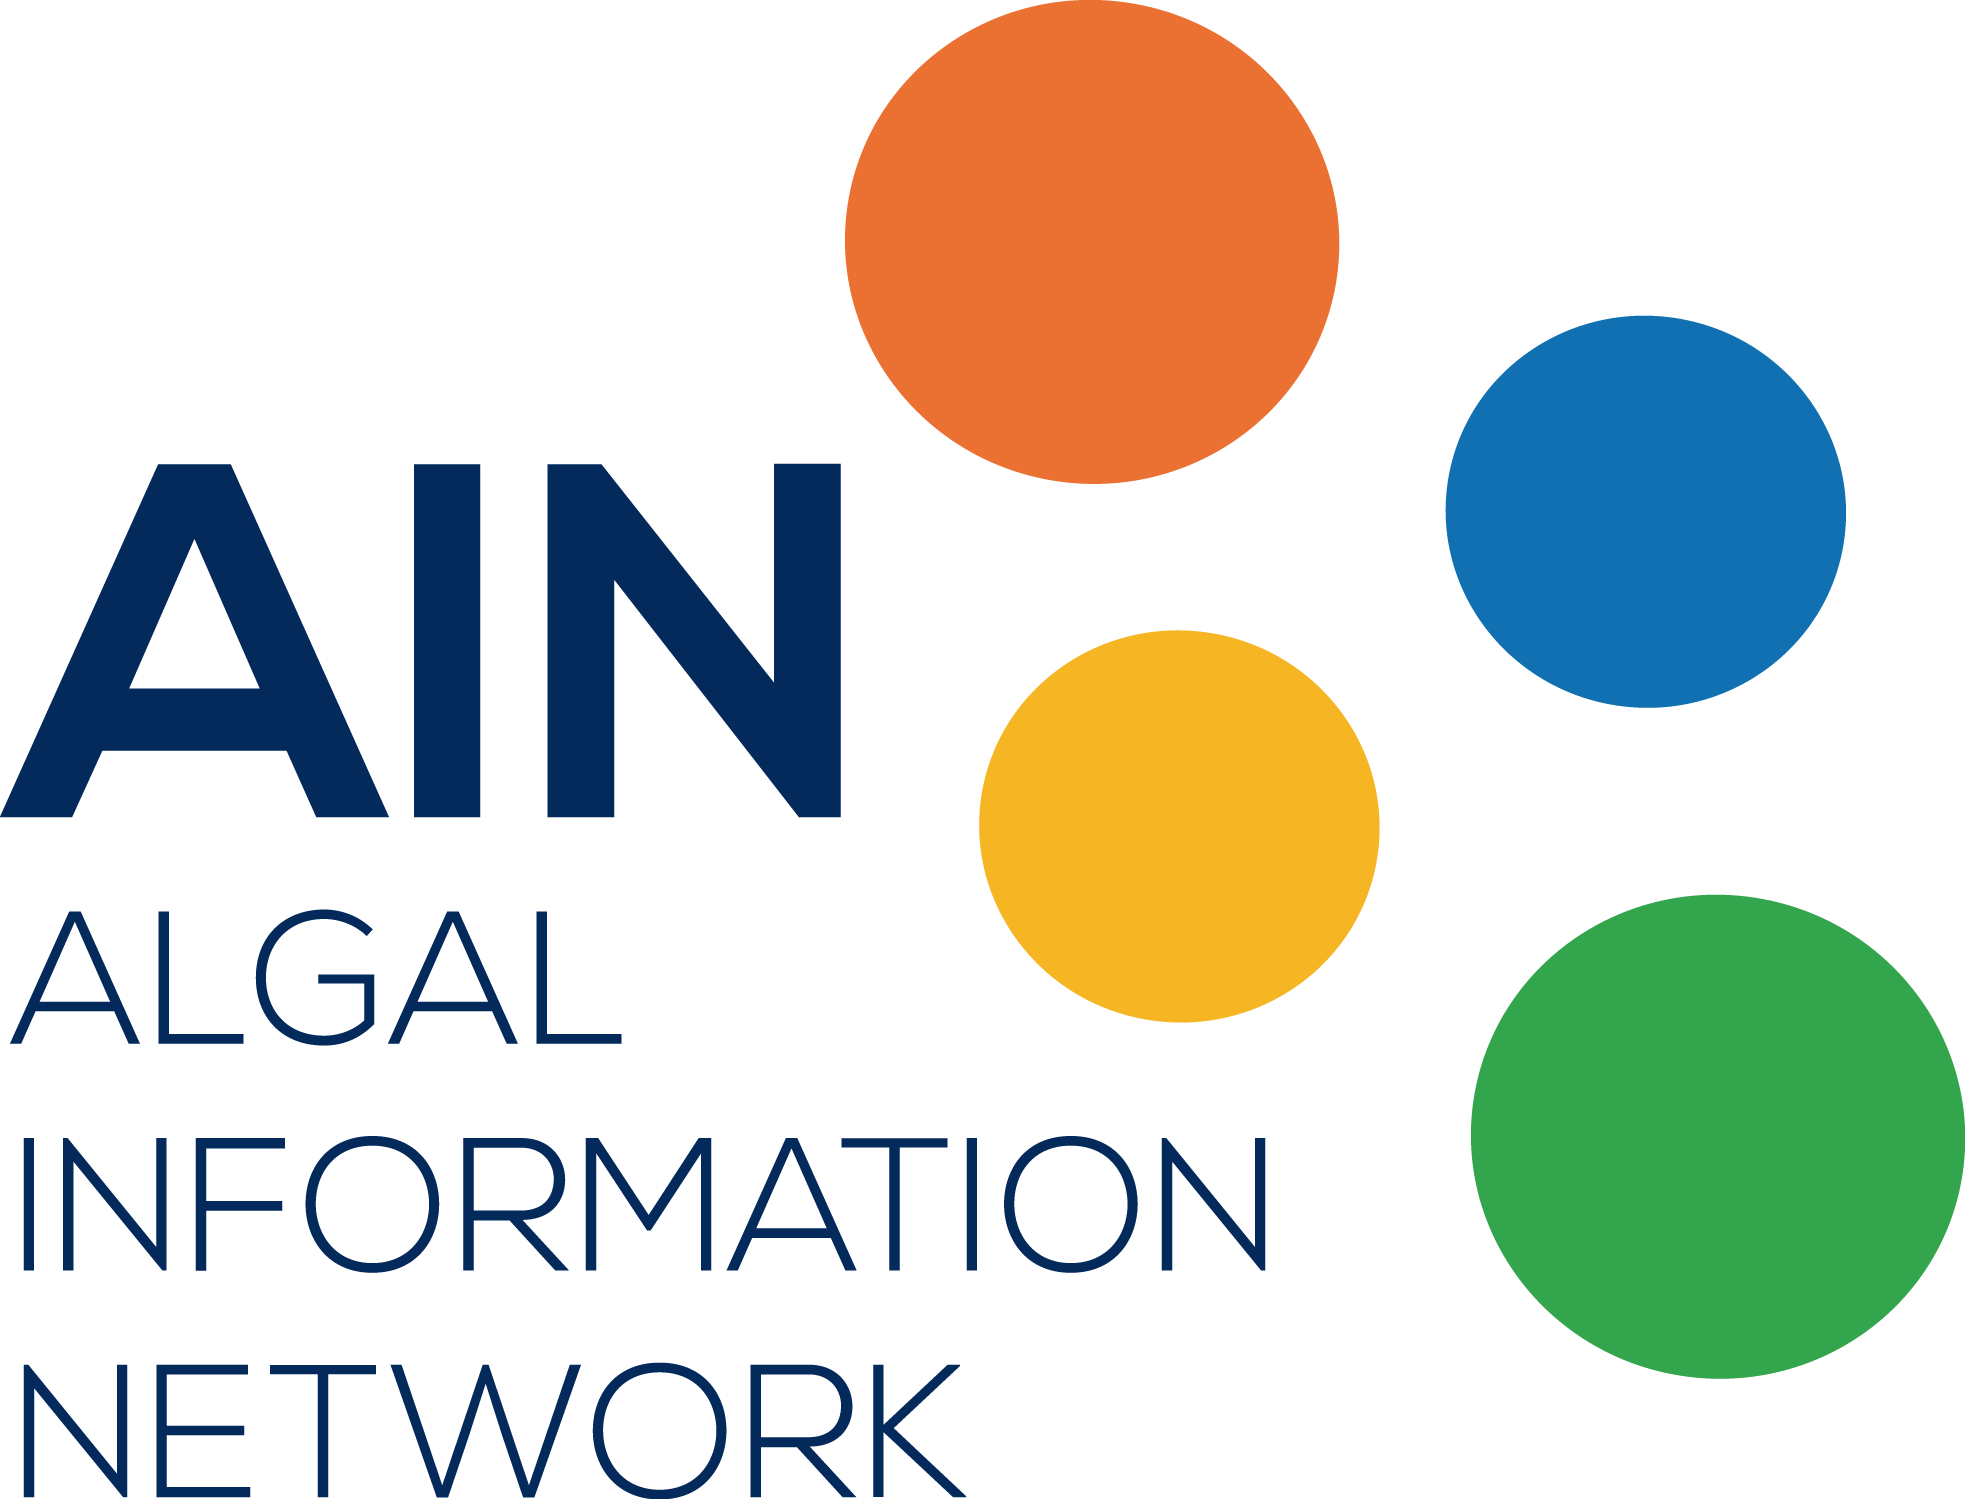 Welcome to AIN - The Algal Information Network!